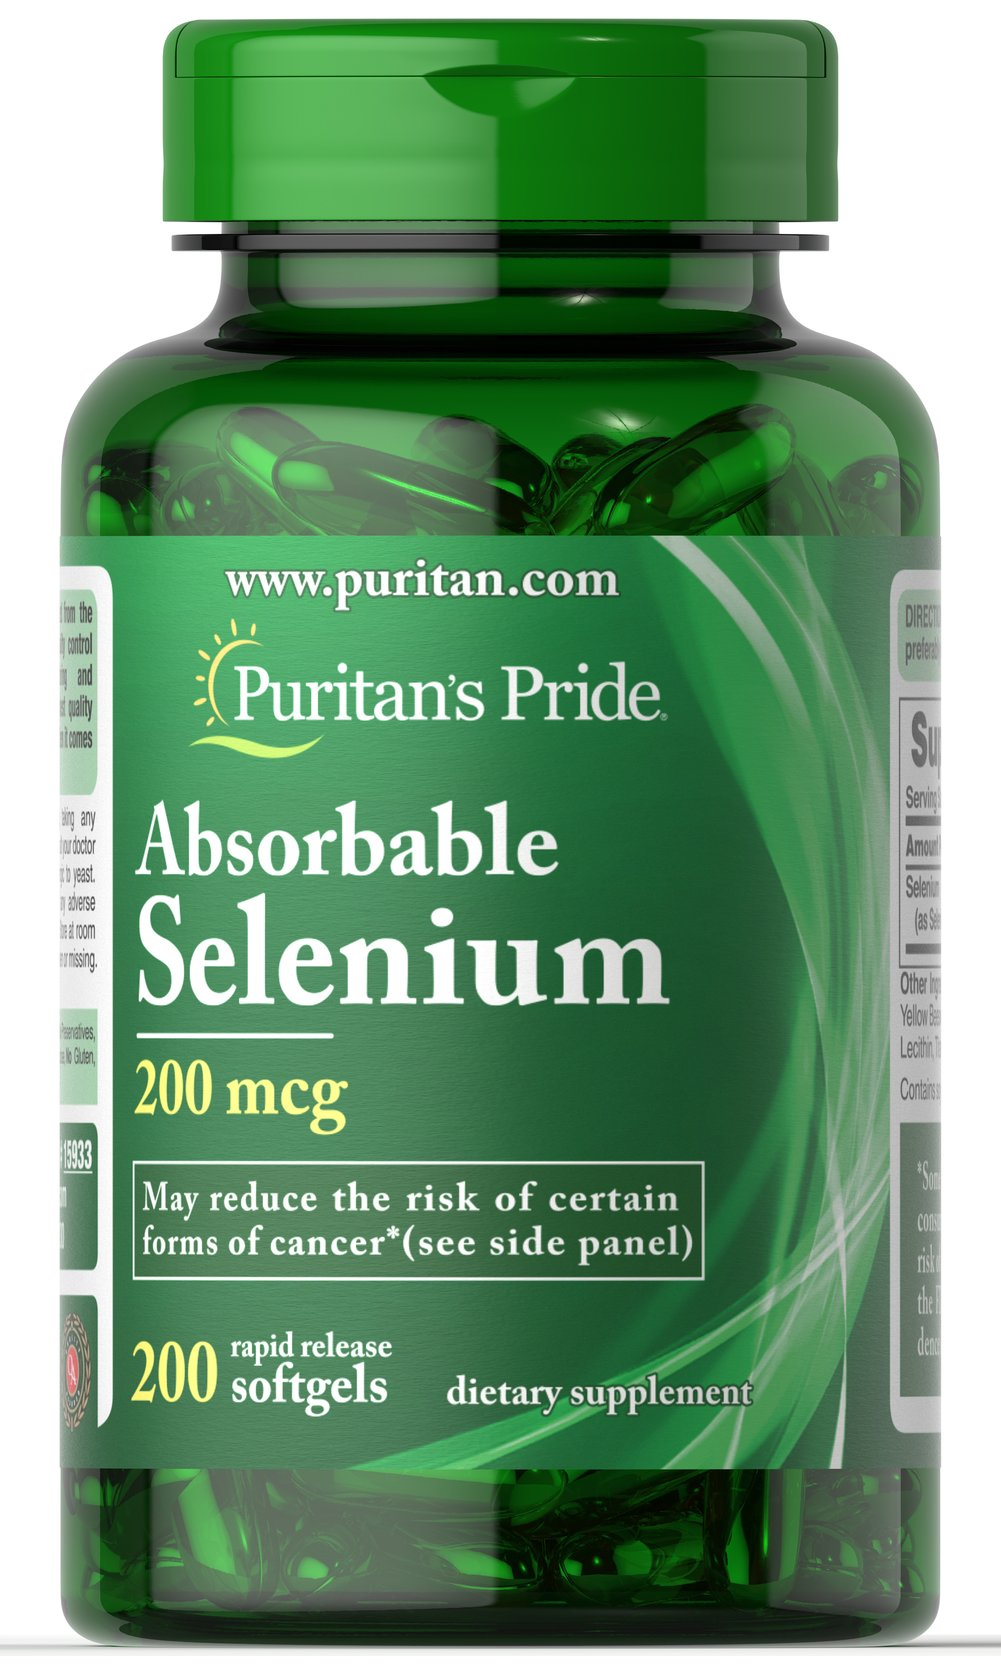 Absorbable Selenium 200 mcg <p>Now this powerful antioxidant is even easier for the body to utilize — new Absorbable Selenium from Puritan's Pride.  It's well known as a significant help in fighting cell-damaging free radicals in the body and in supporting a healthy immune system**. Get all the antioxidant and immune system power of selenium in a readily absorbable form with Puritan's Pride Absorbable Selenium Softgels.**</p> 200 Softgels 200 mcg $16.99